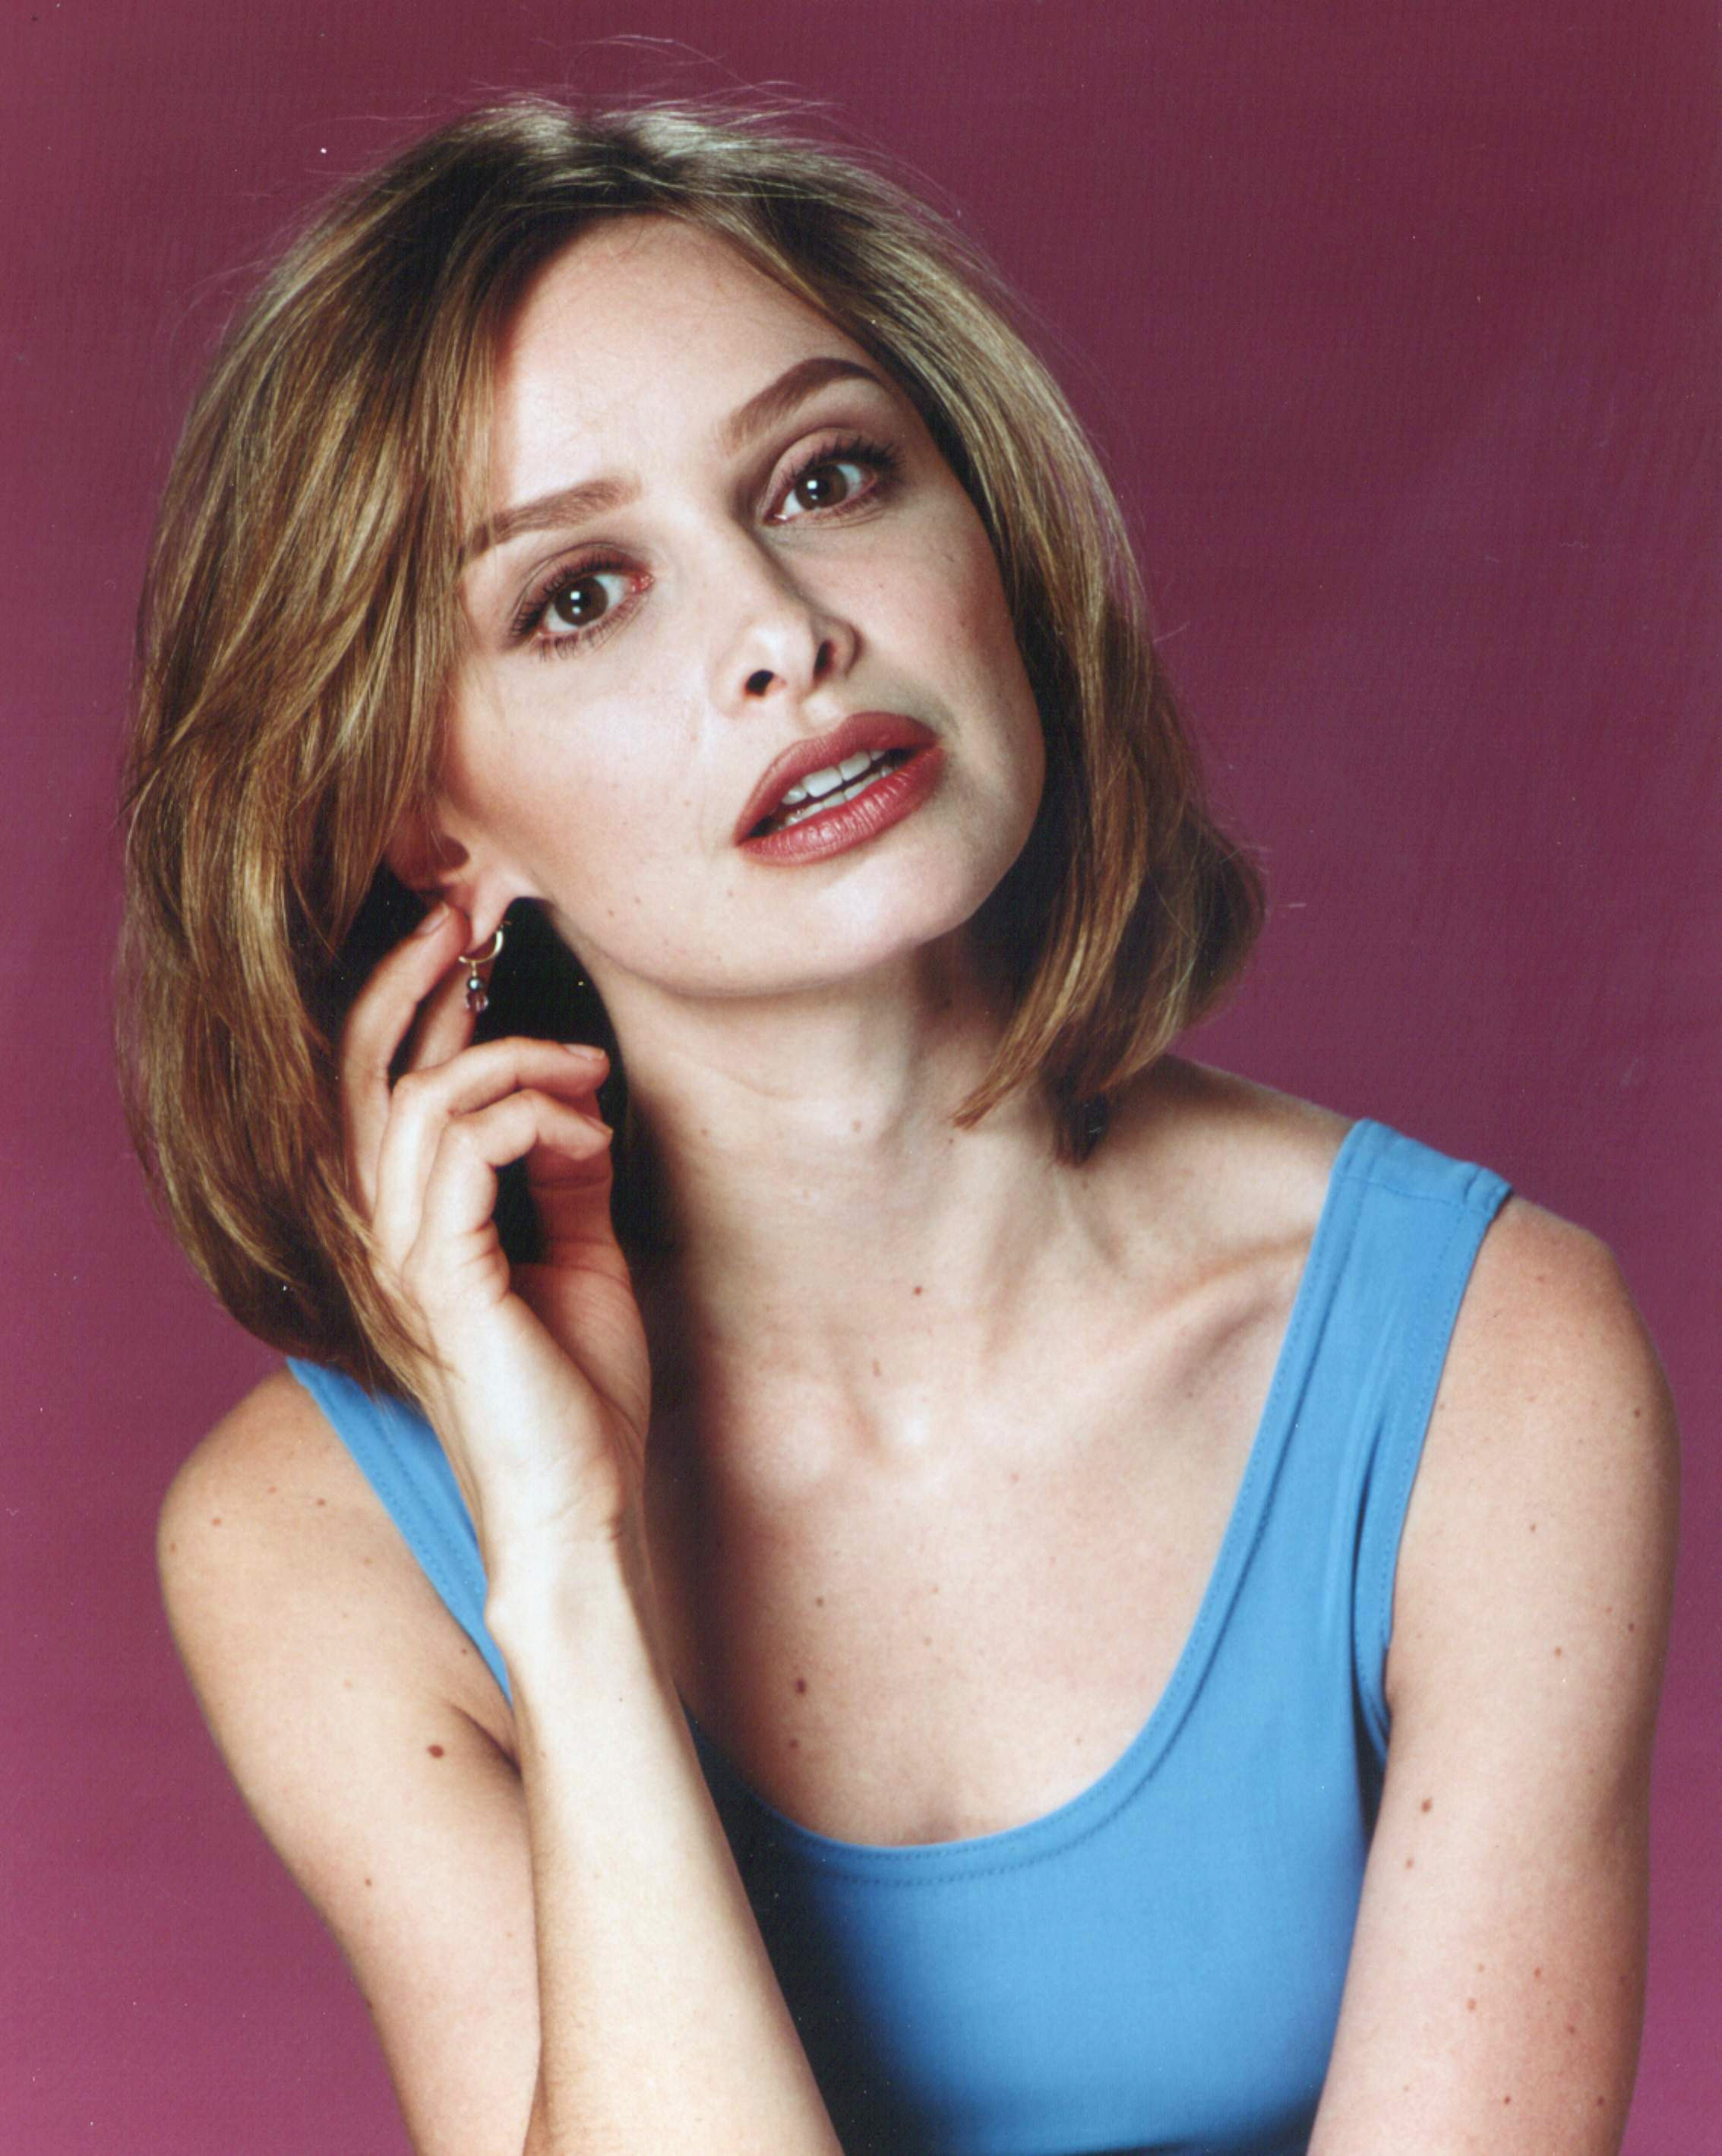 Calista Flockhart Calista Flockhart new pics